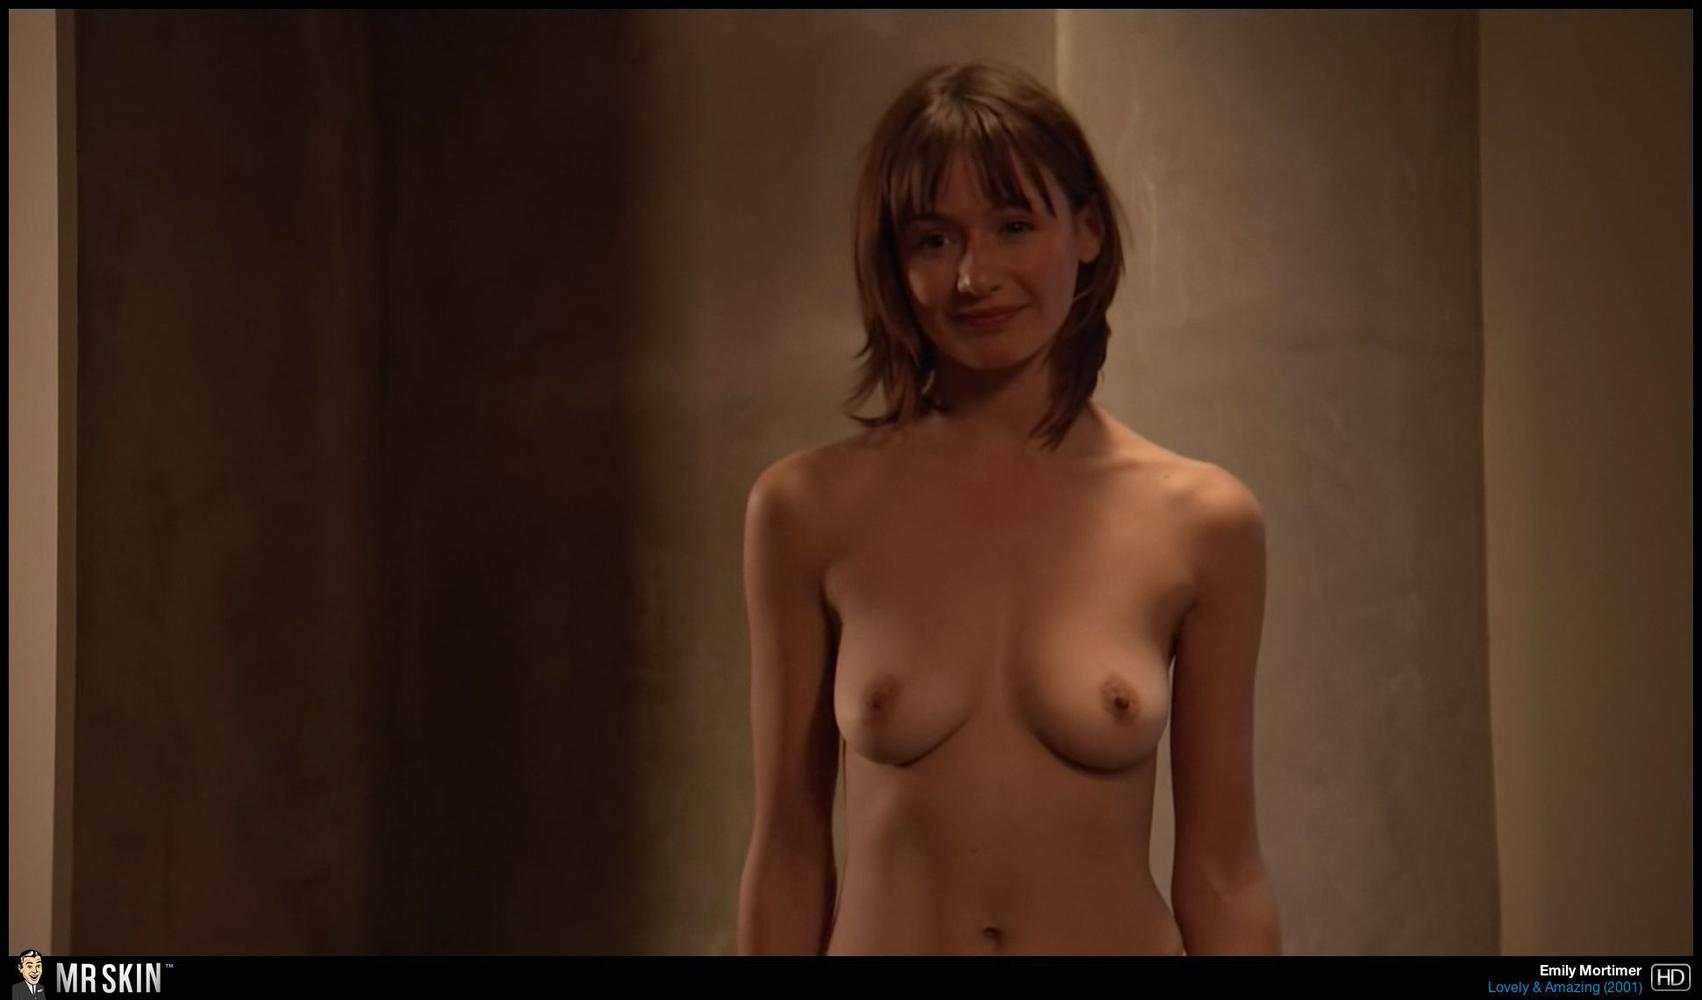 nude movie stars mr skin top